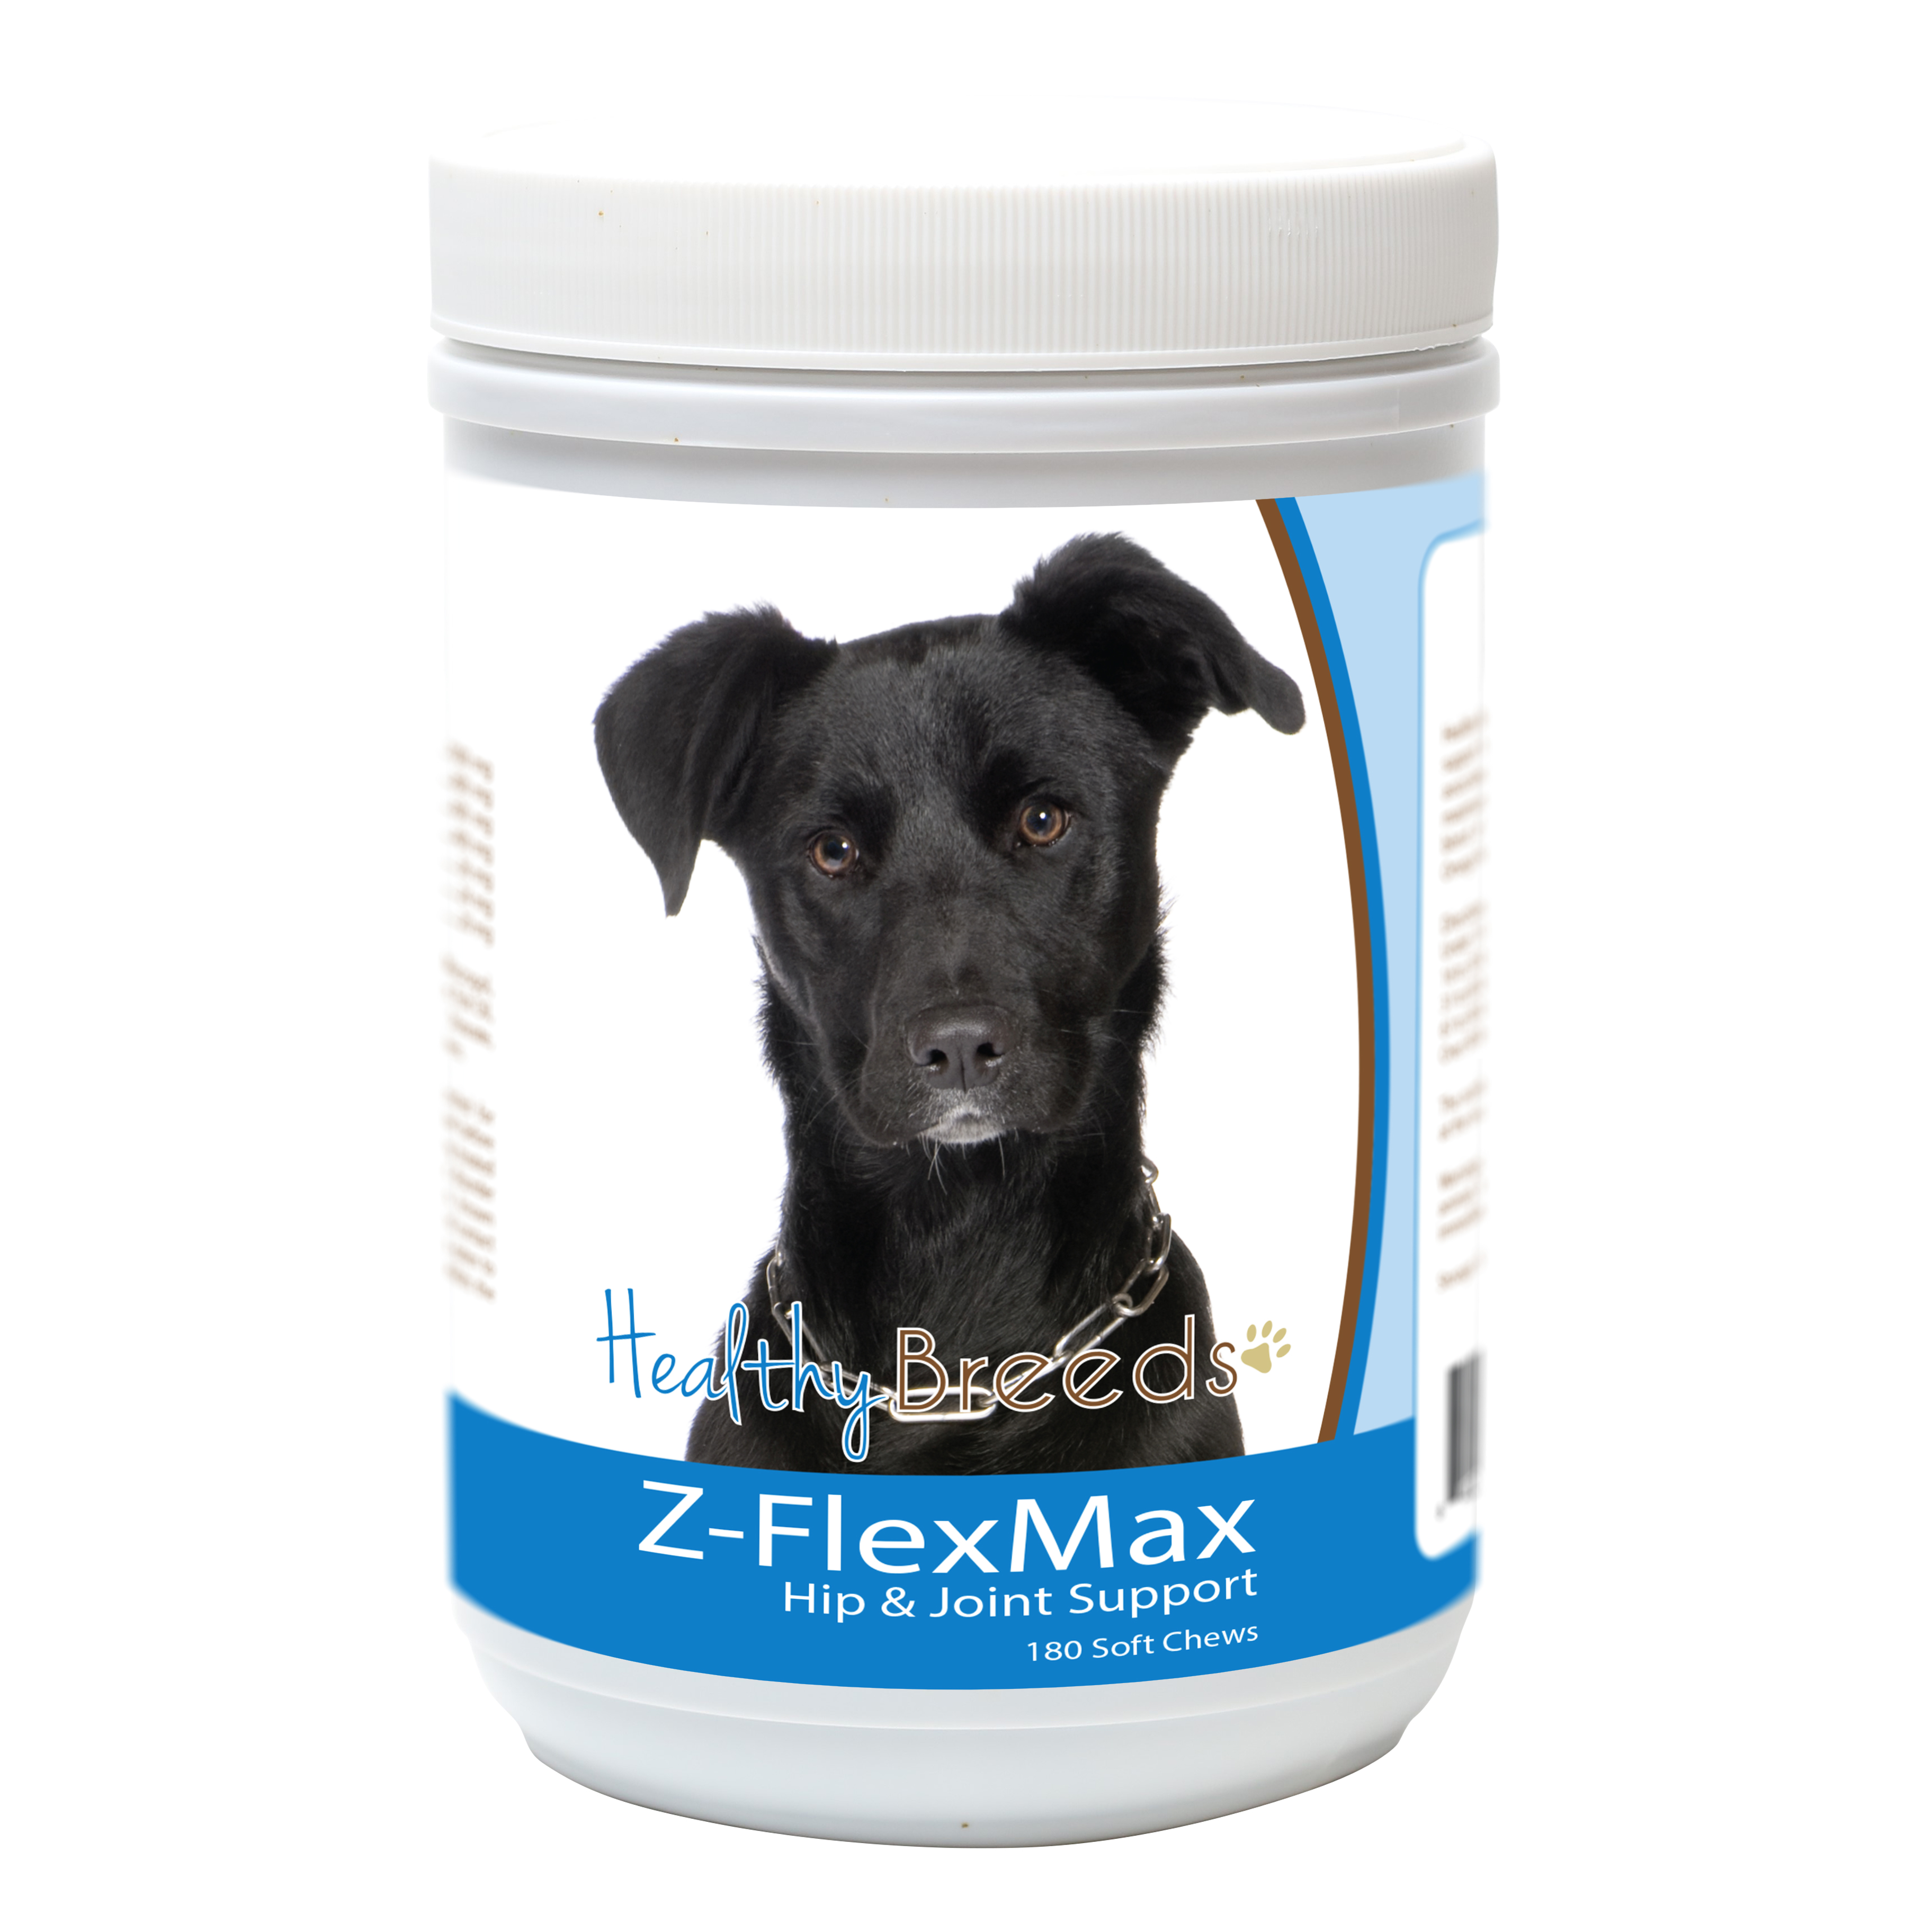 Healthy Breeds Mutt Z-Flex Max Dog Hip and Joint Support 180 Count